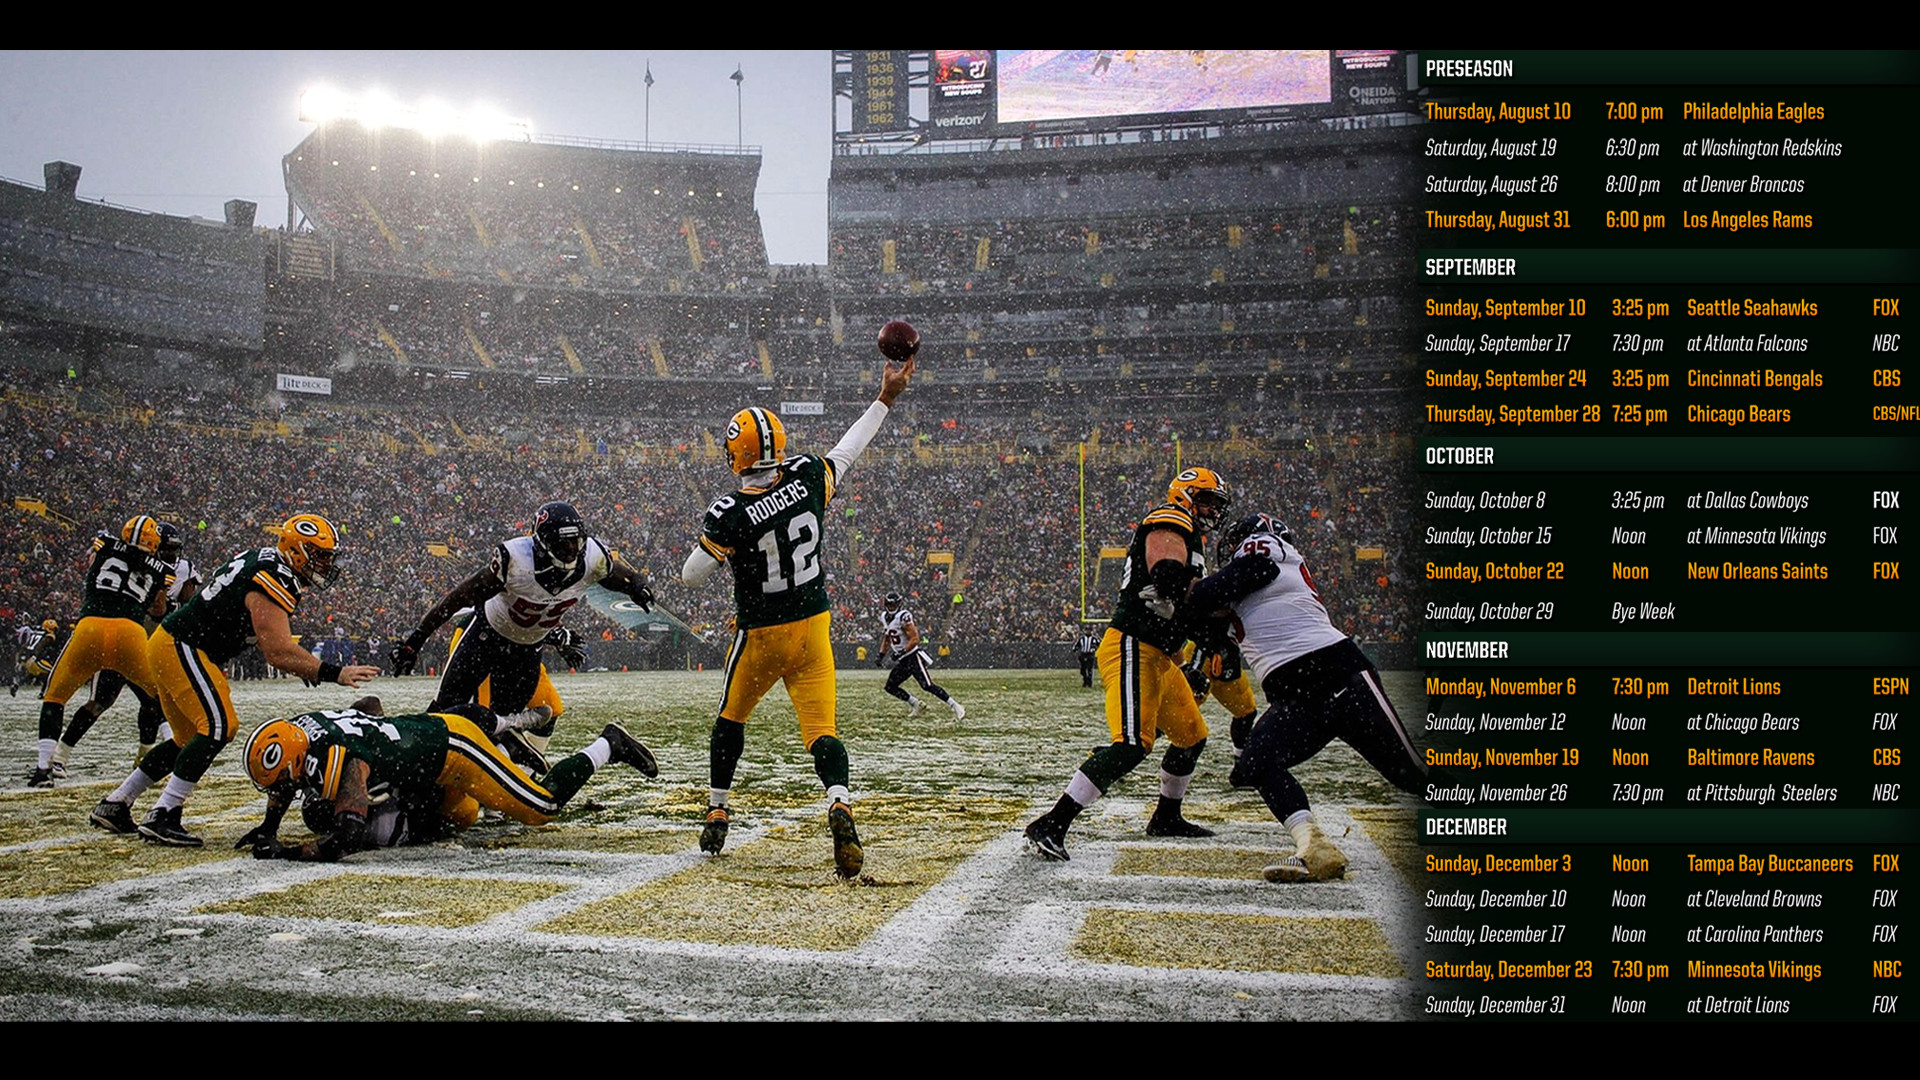 Green Bay Packers Schedule Wallpaper (69+ images)